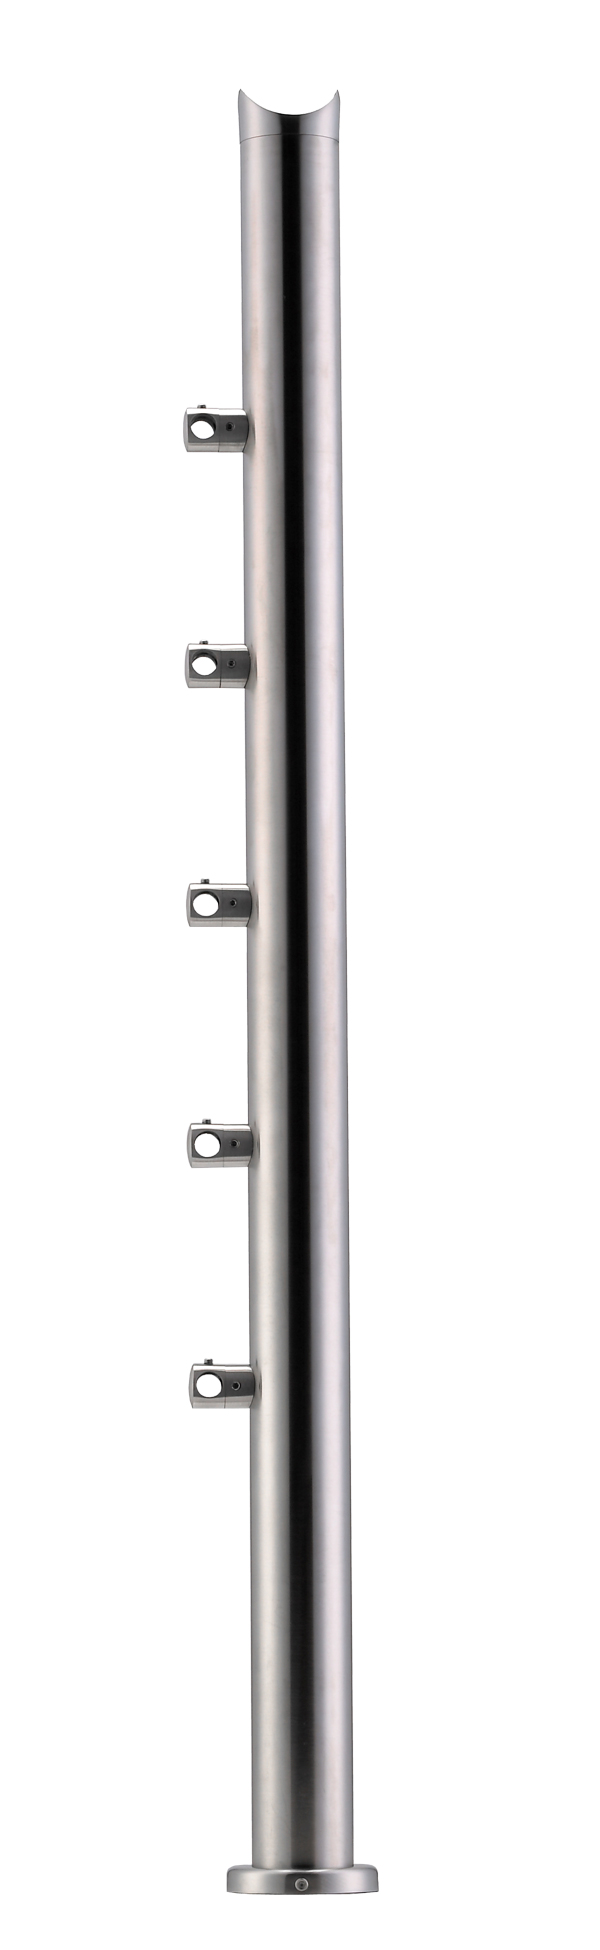 Stainless Steel Balustrade Posts - Tubular - SS:2020578A